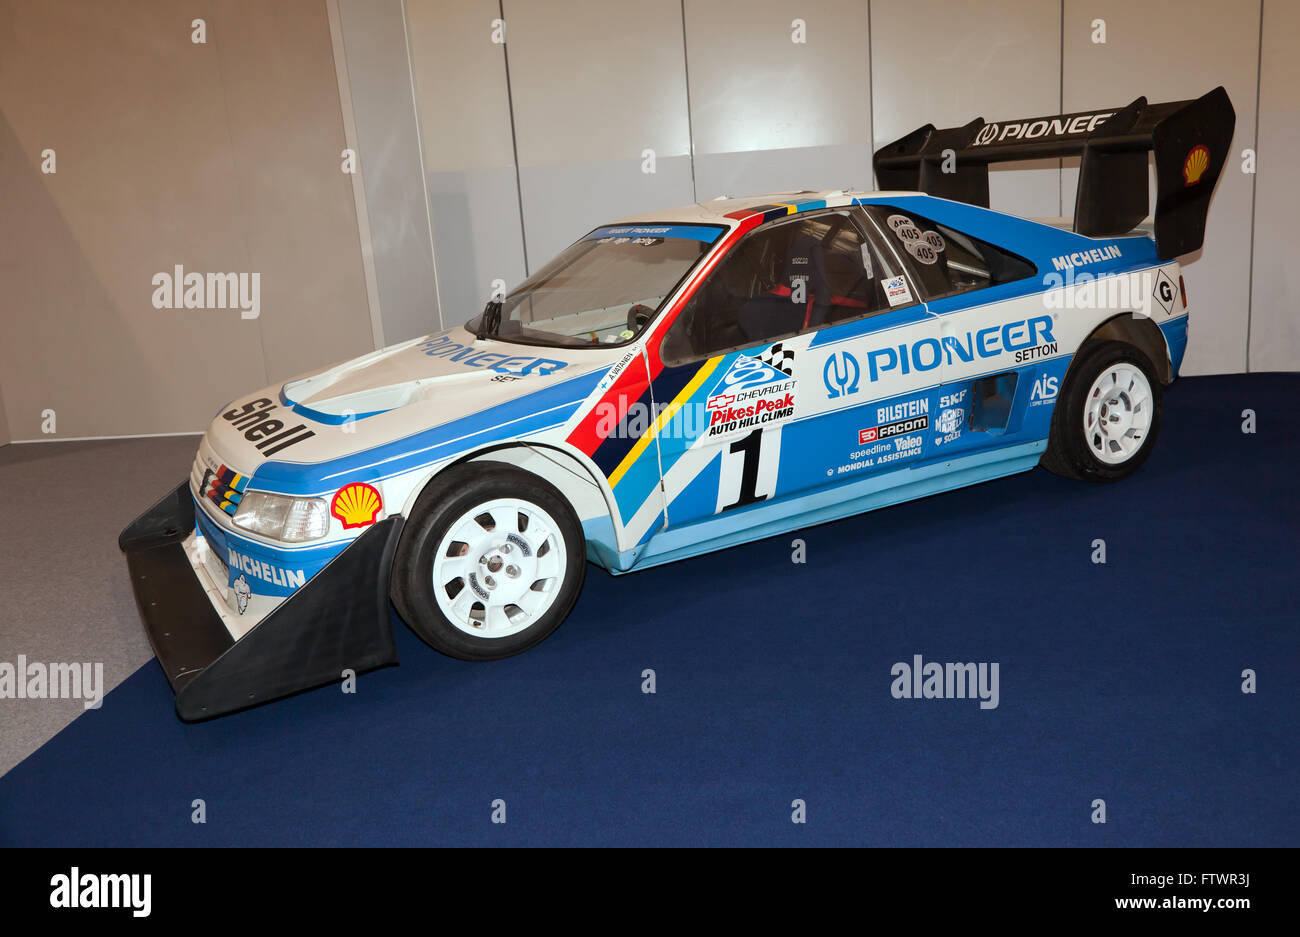 The Peugeot 405 T16 which won Pikes Peak in 1988 driven by Stock